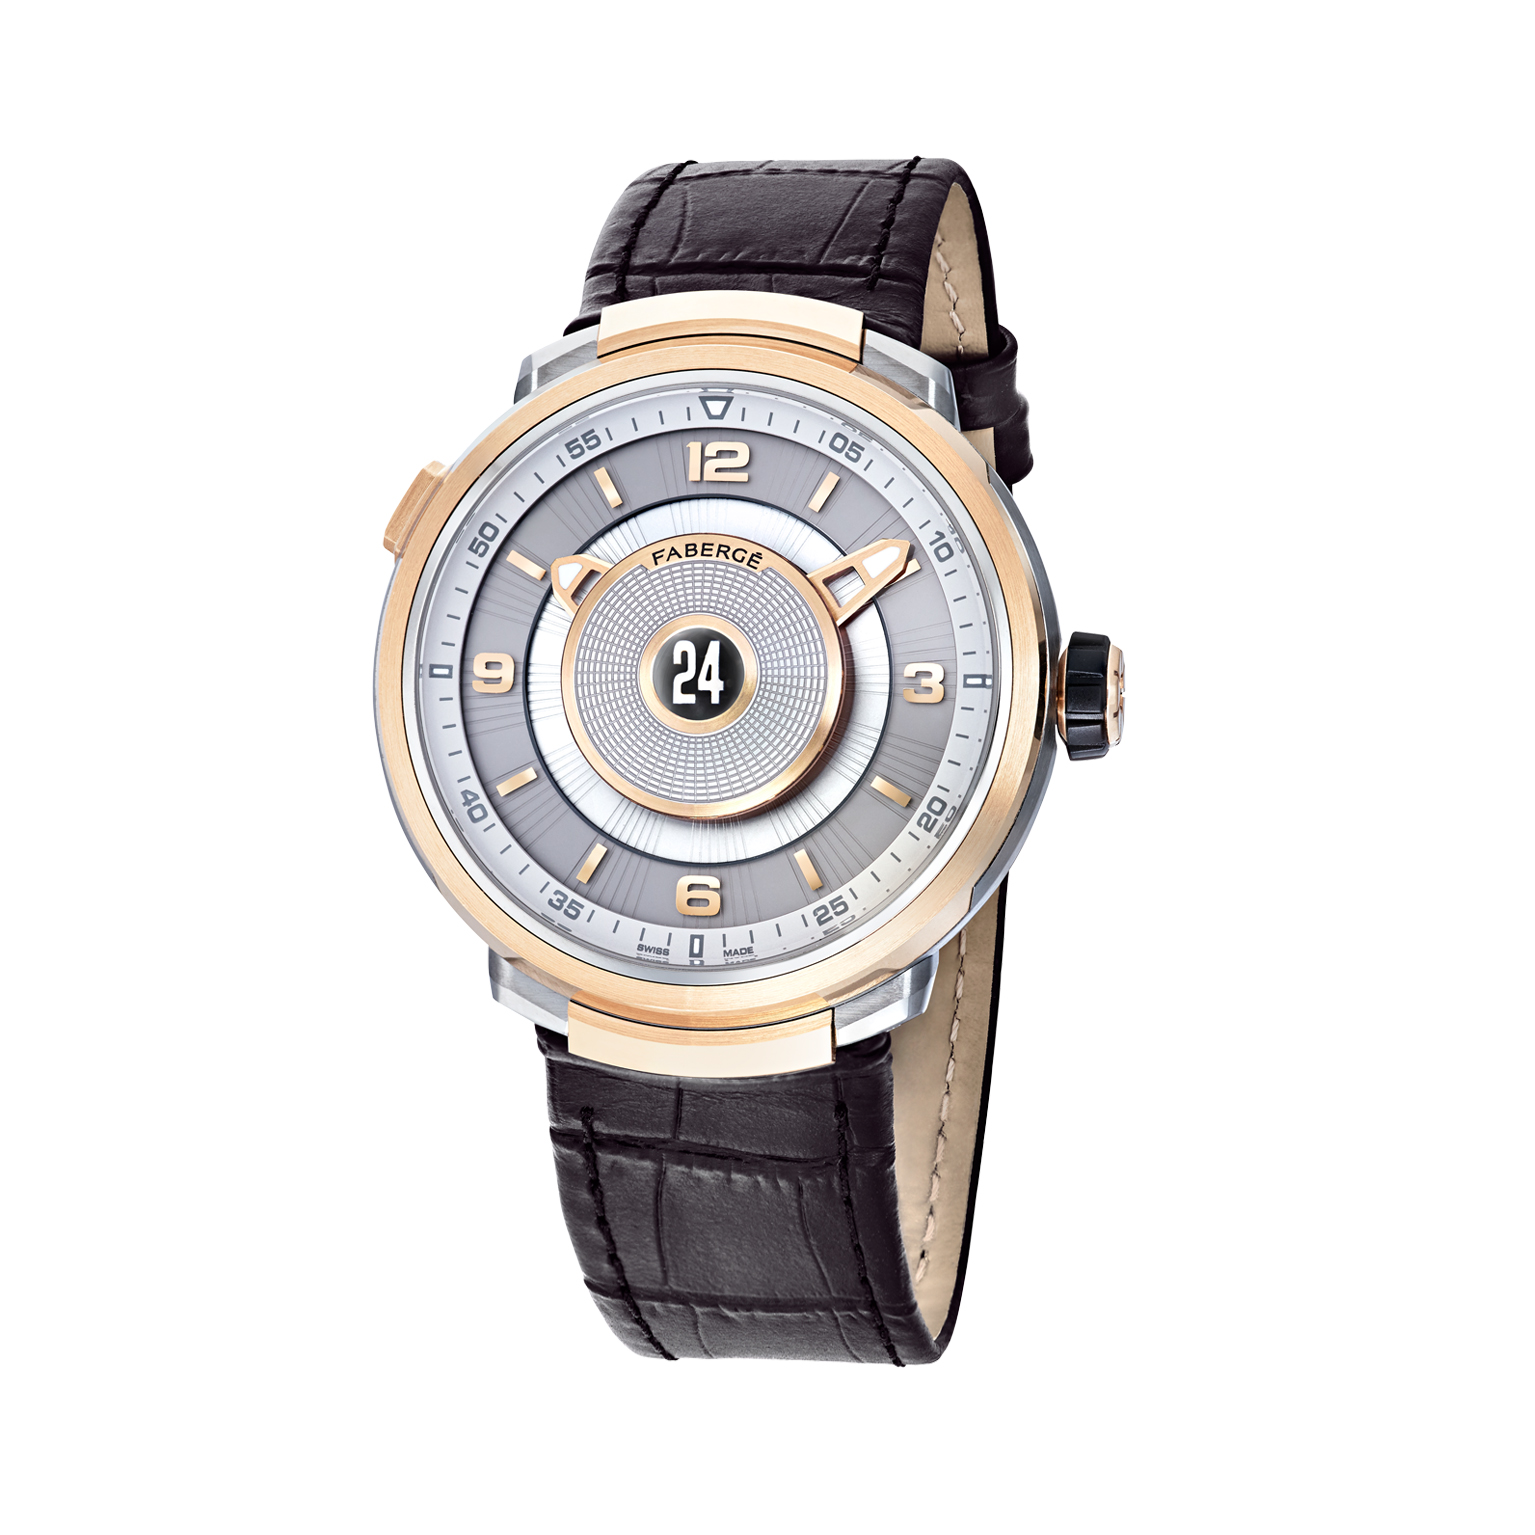 Travel Time Watch Prize: